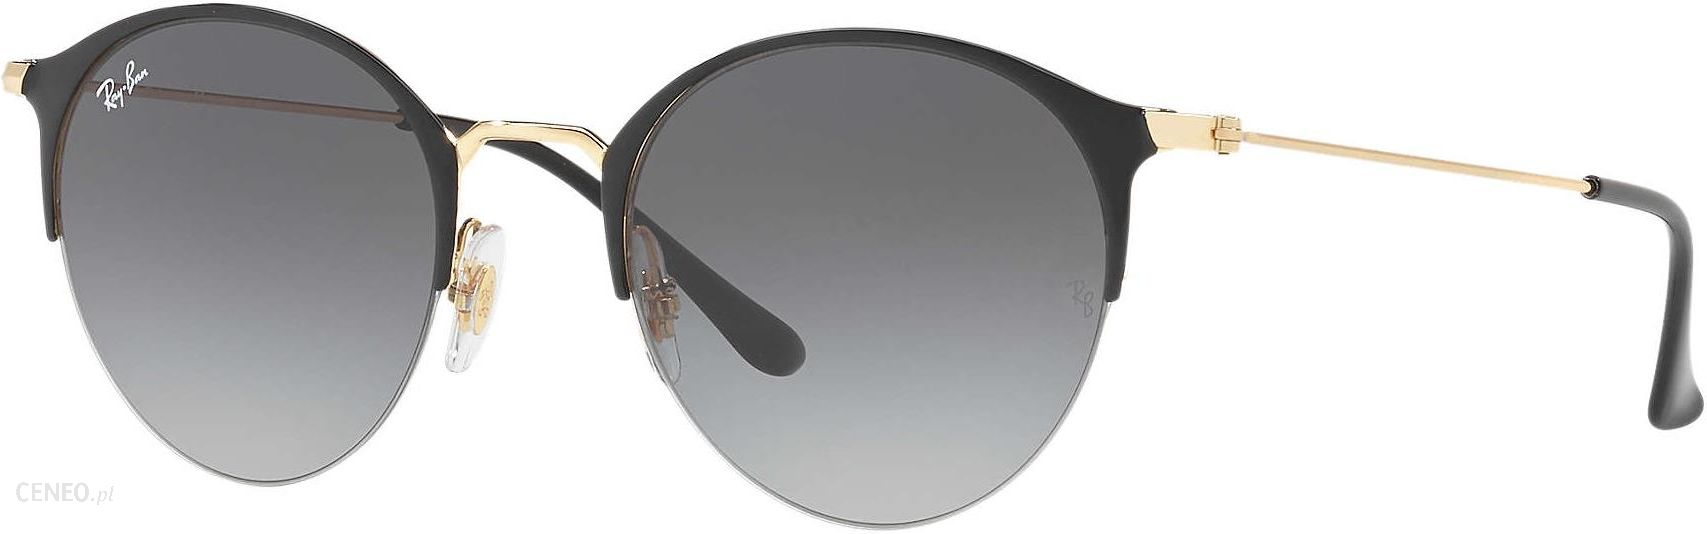 418c6d91f0 Ray-Ban RB3578 187 11 50 - Ceny i opinie - Ceneo.pl